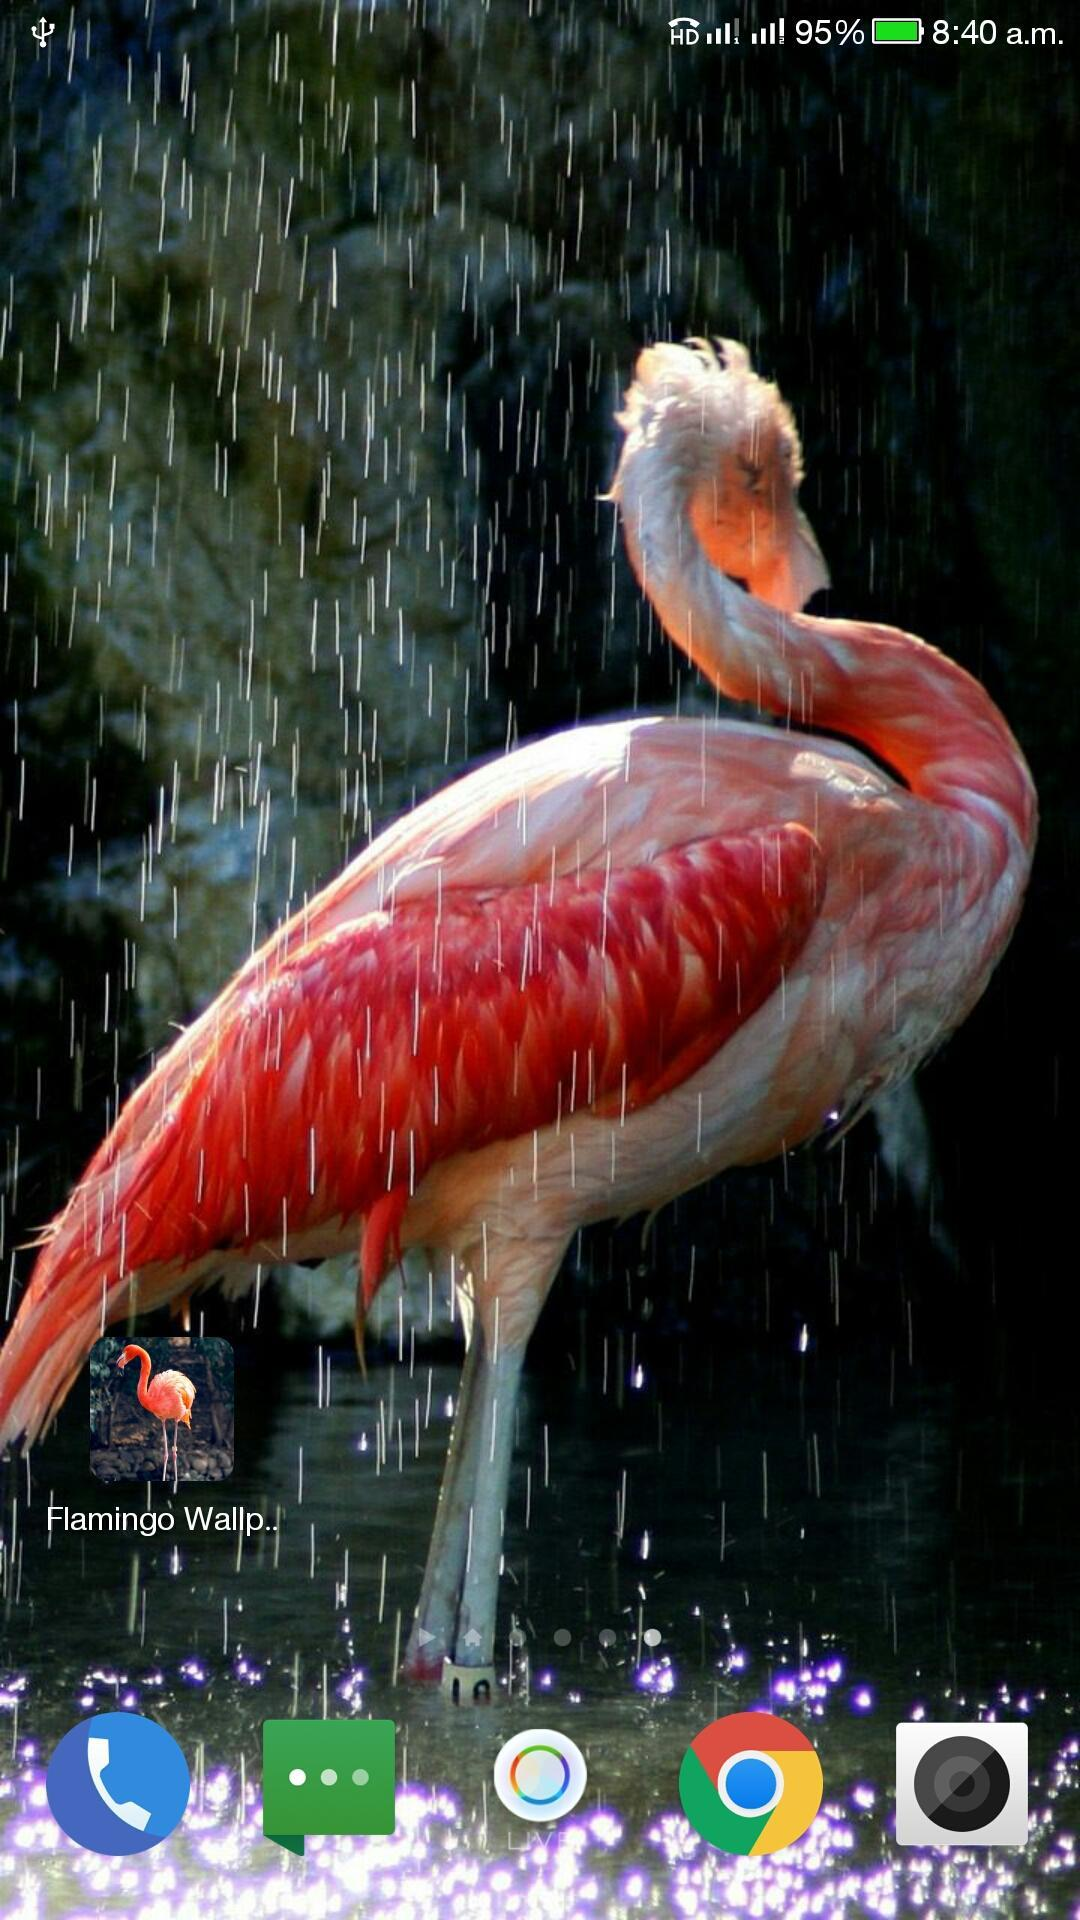 Flamingo Wallpaper Hd For Android Apk Download